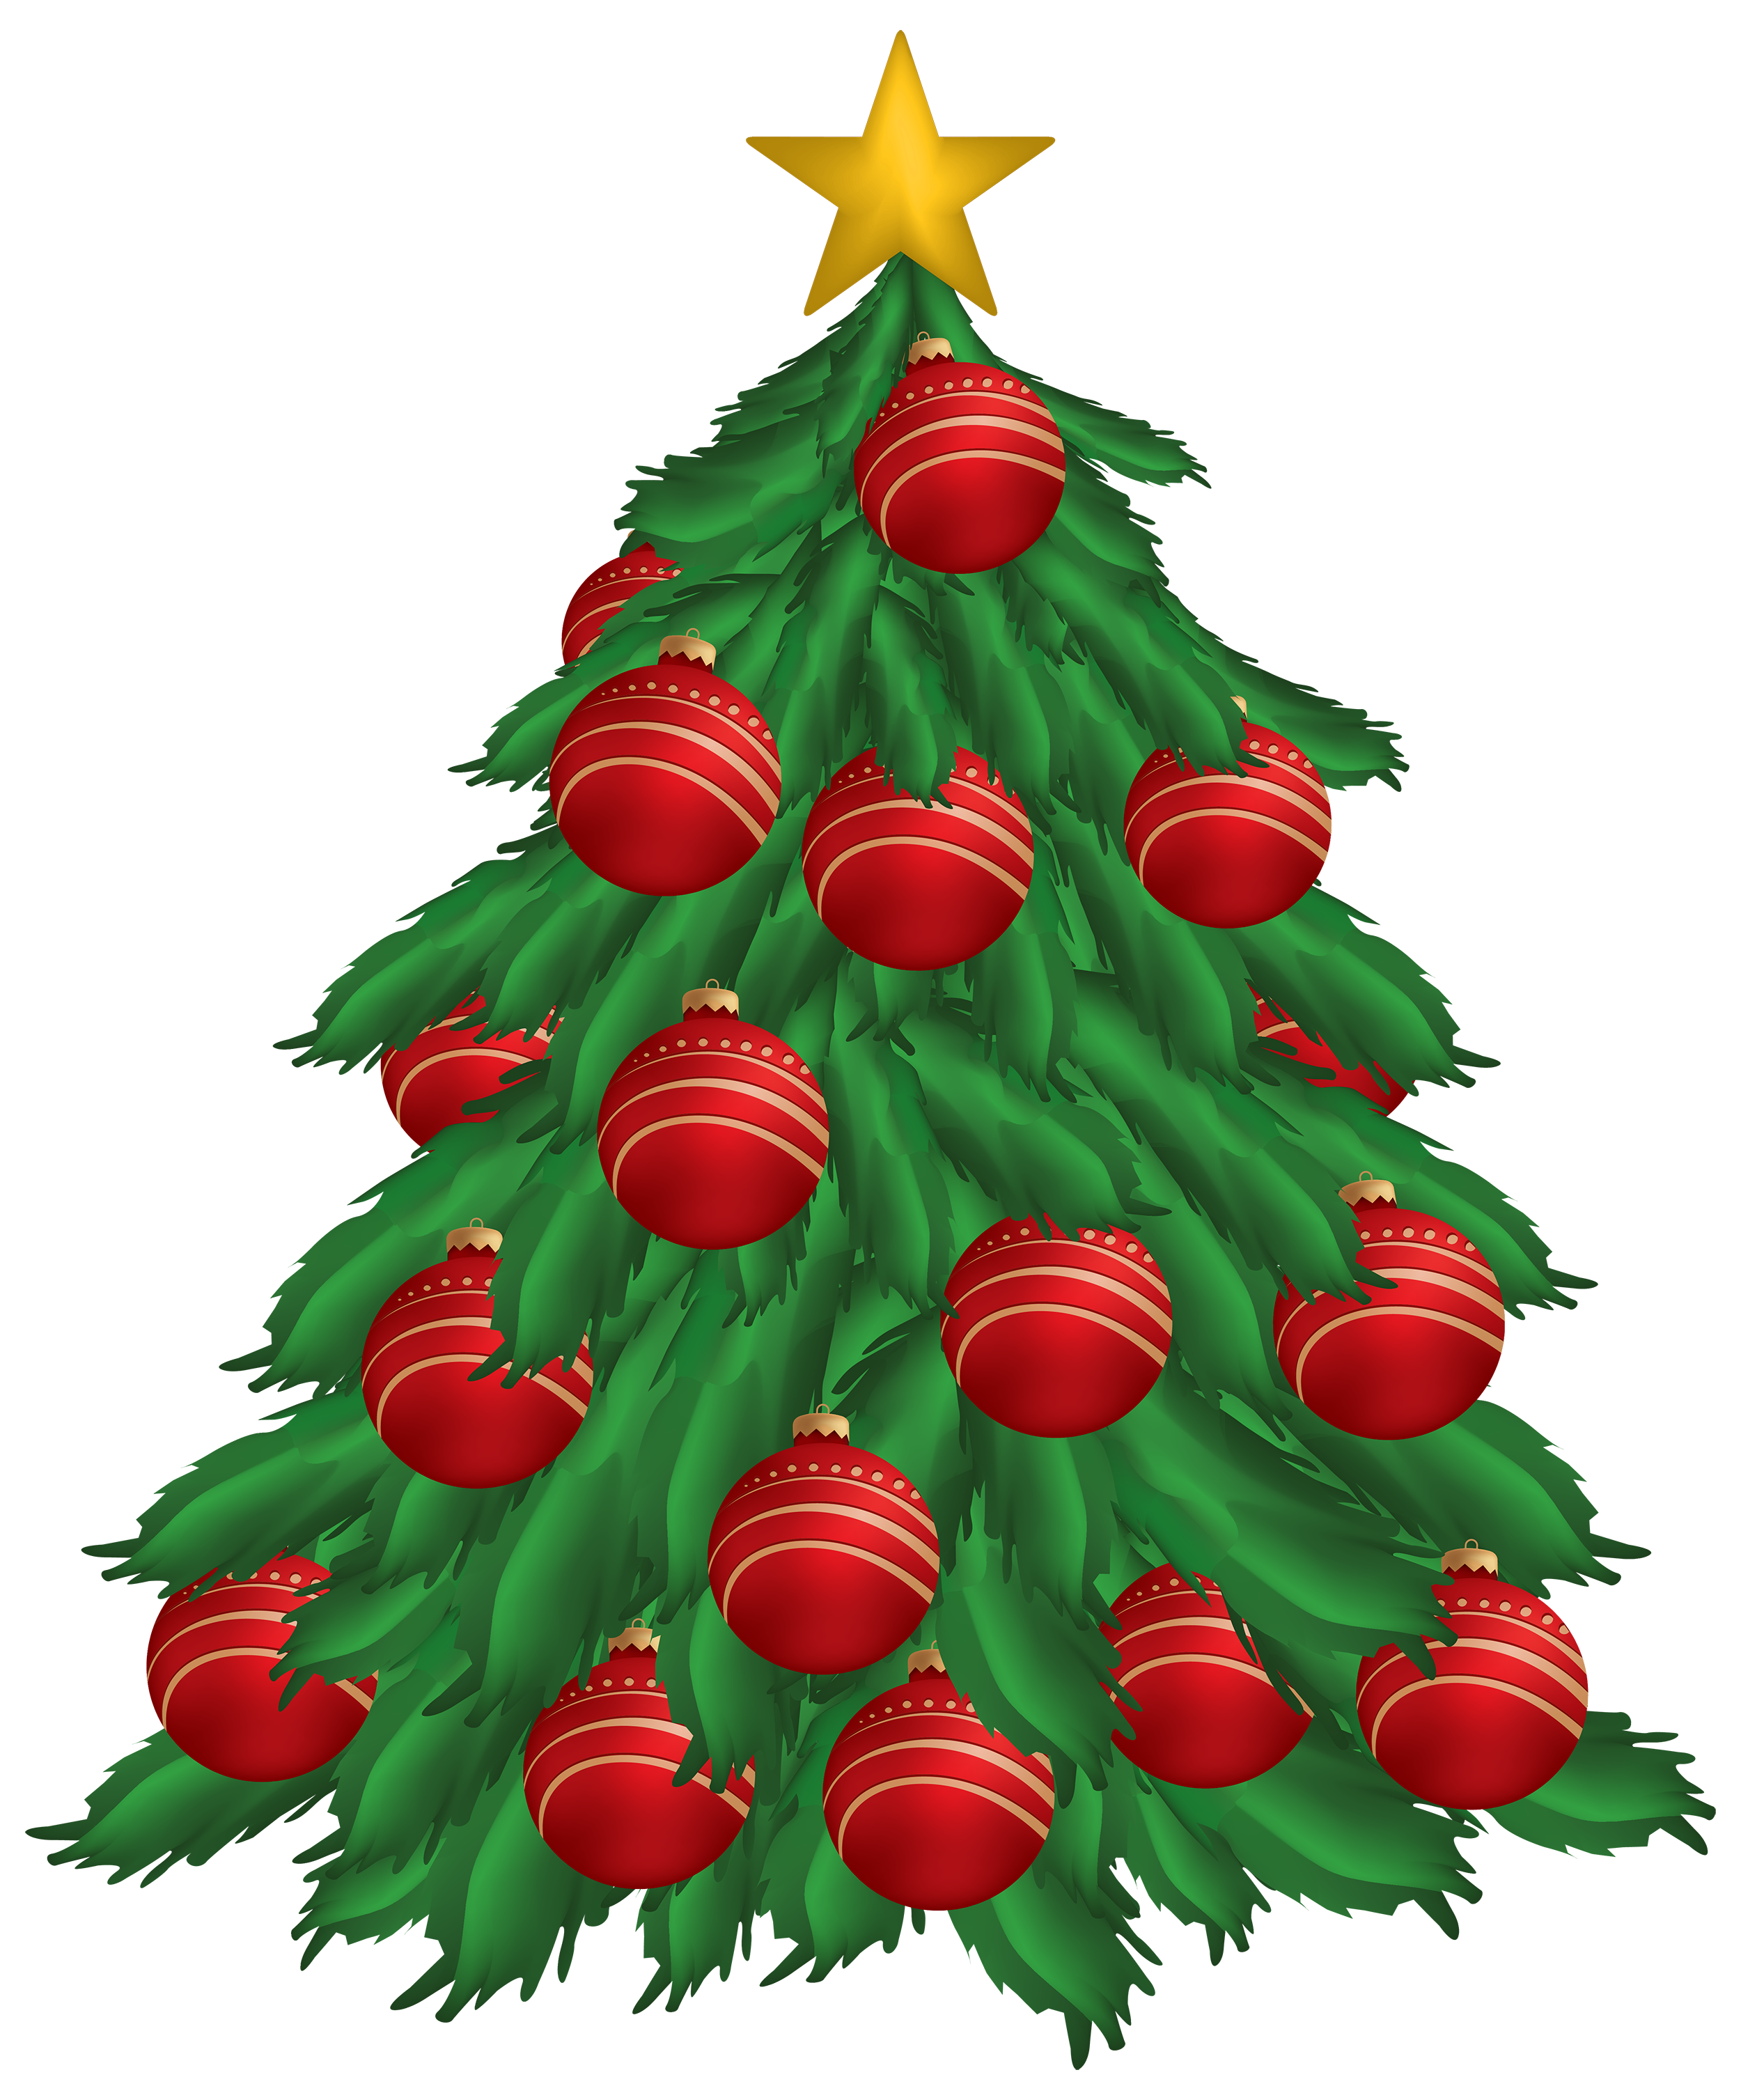 Christmas tree top view clipart banner free download Christmas Tree with Red Christmas Ornaments PNG Clipart - Best WEB ... banner free download